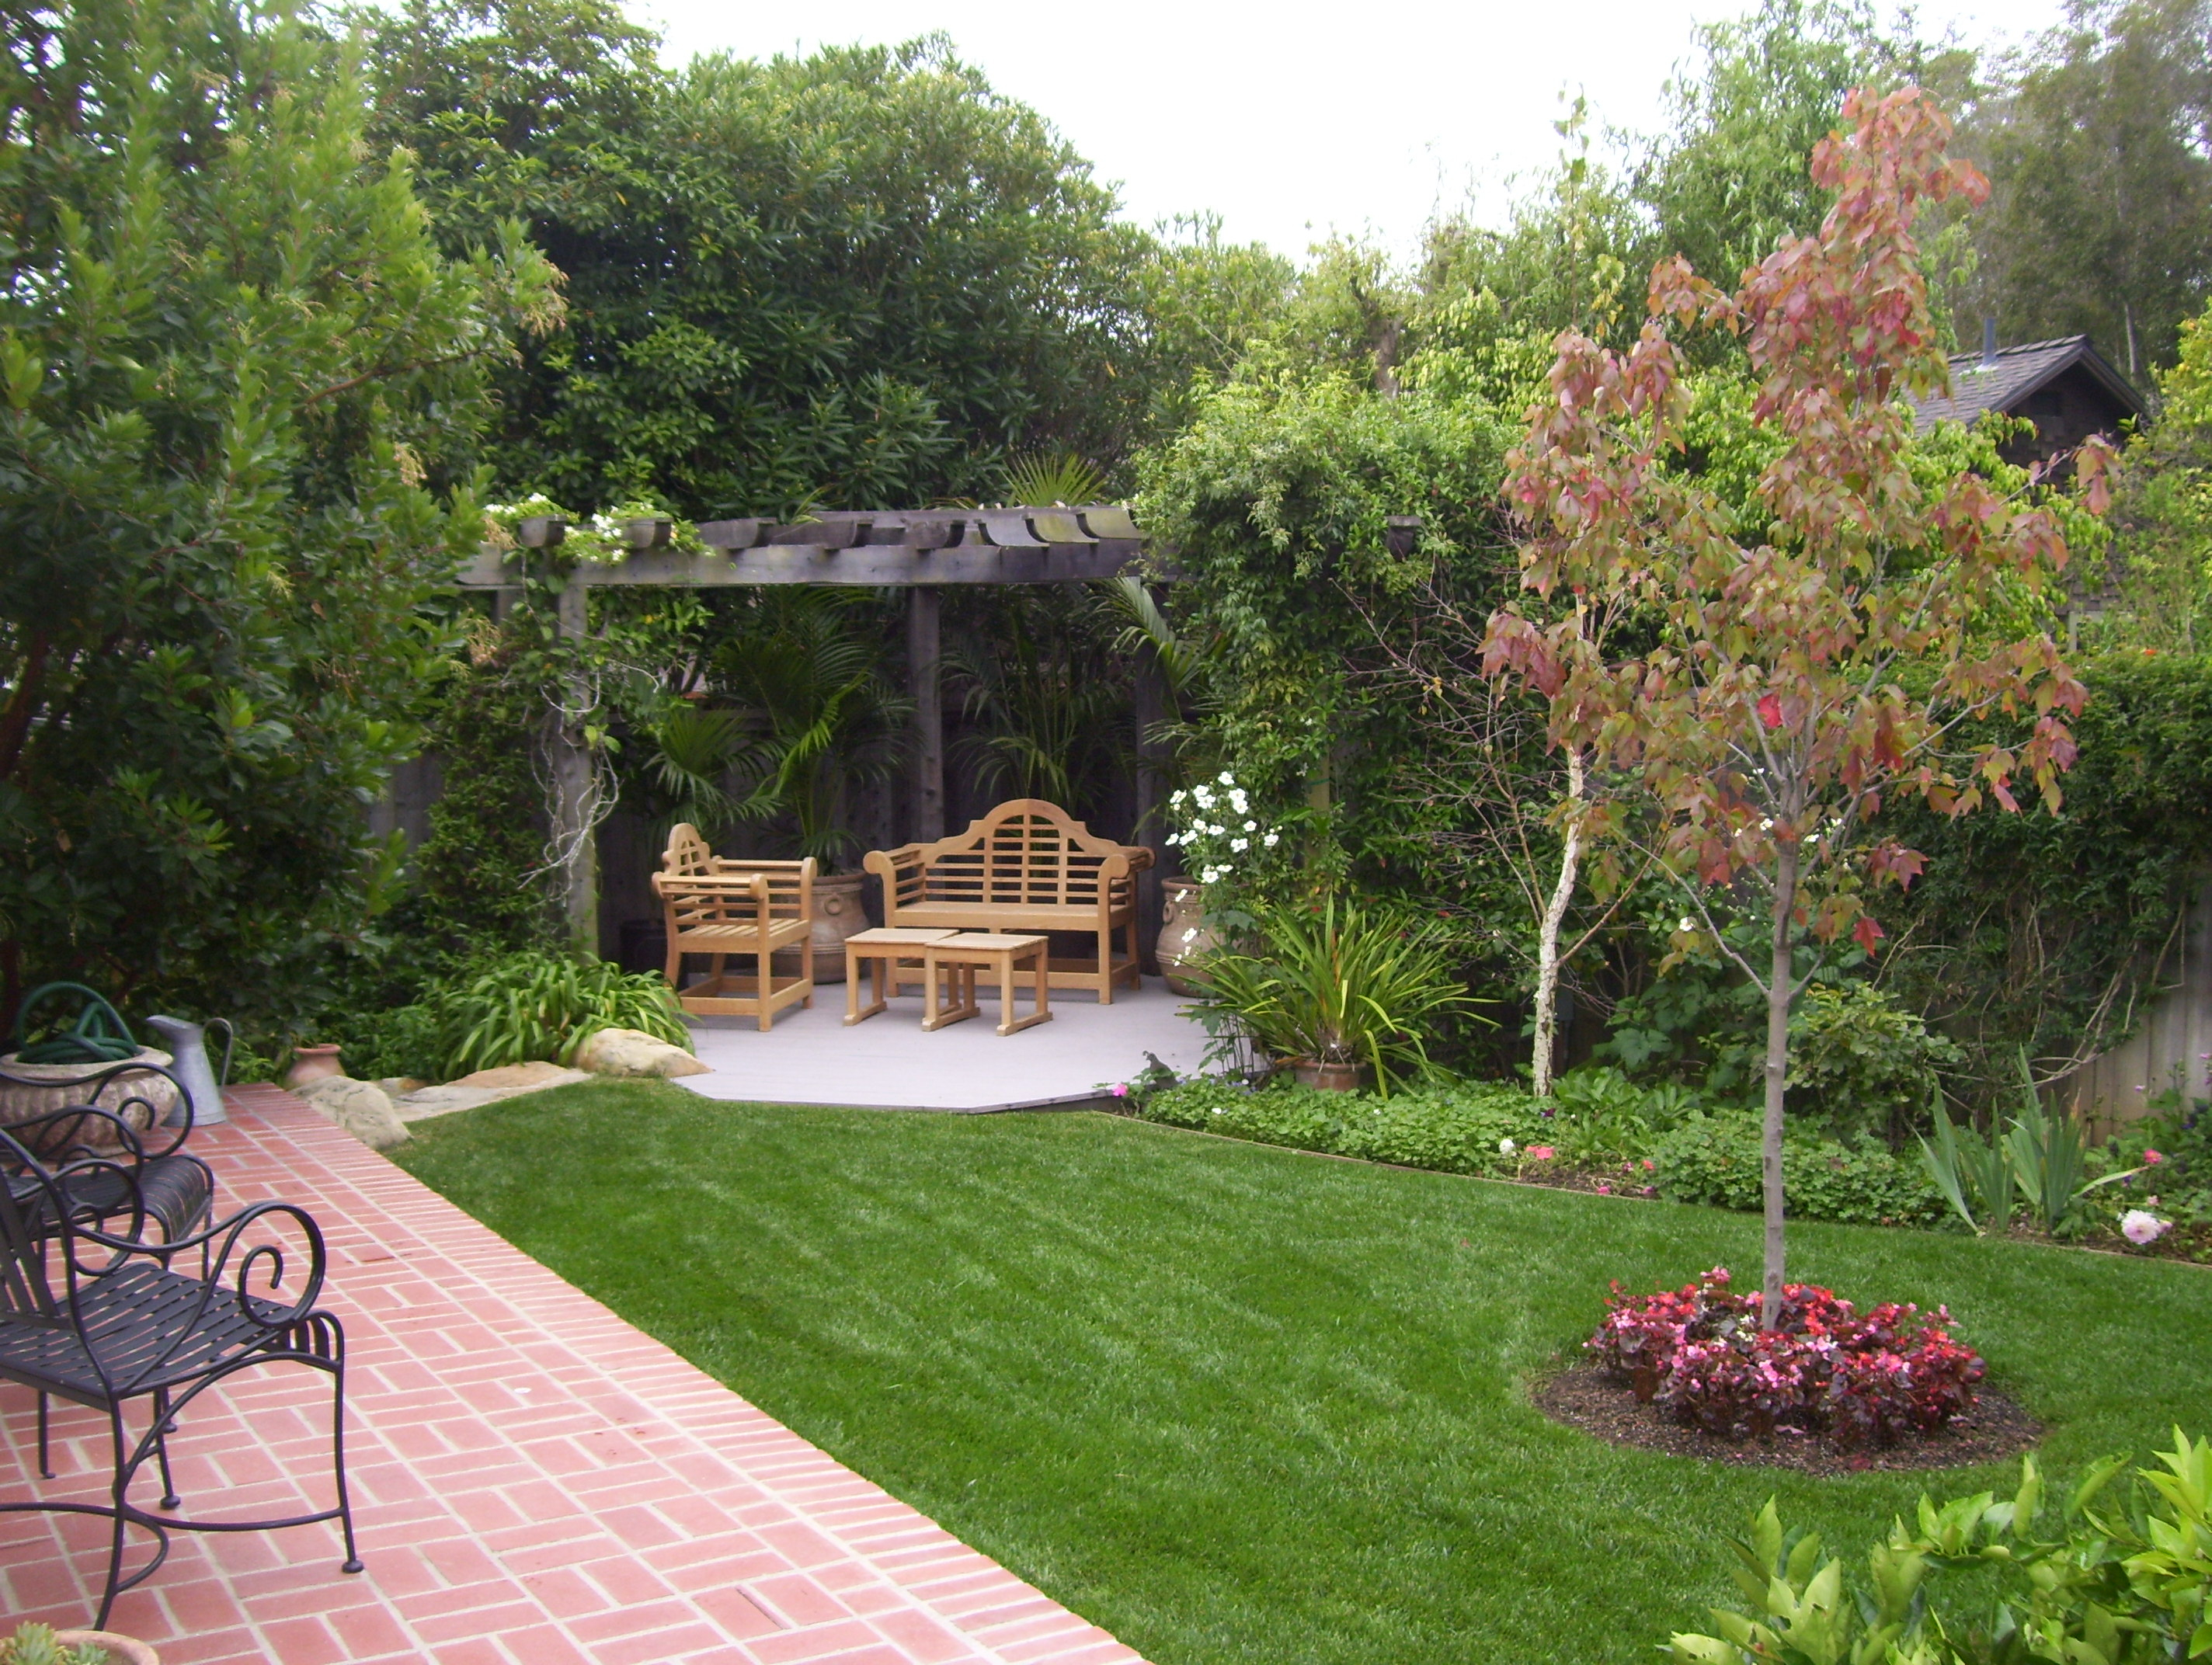 Backyard Landscaping Ideas Santa Barbara Down To Earth Landscapes inside 14 Awesome Tricks of How to Make Backyard Landscape Plans